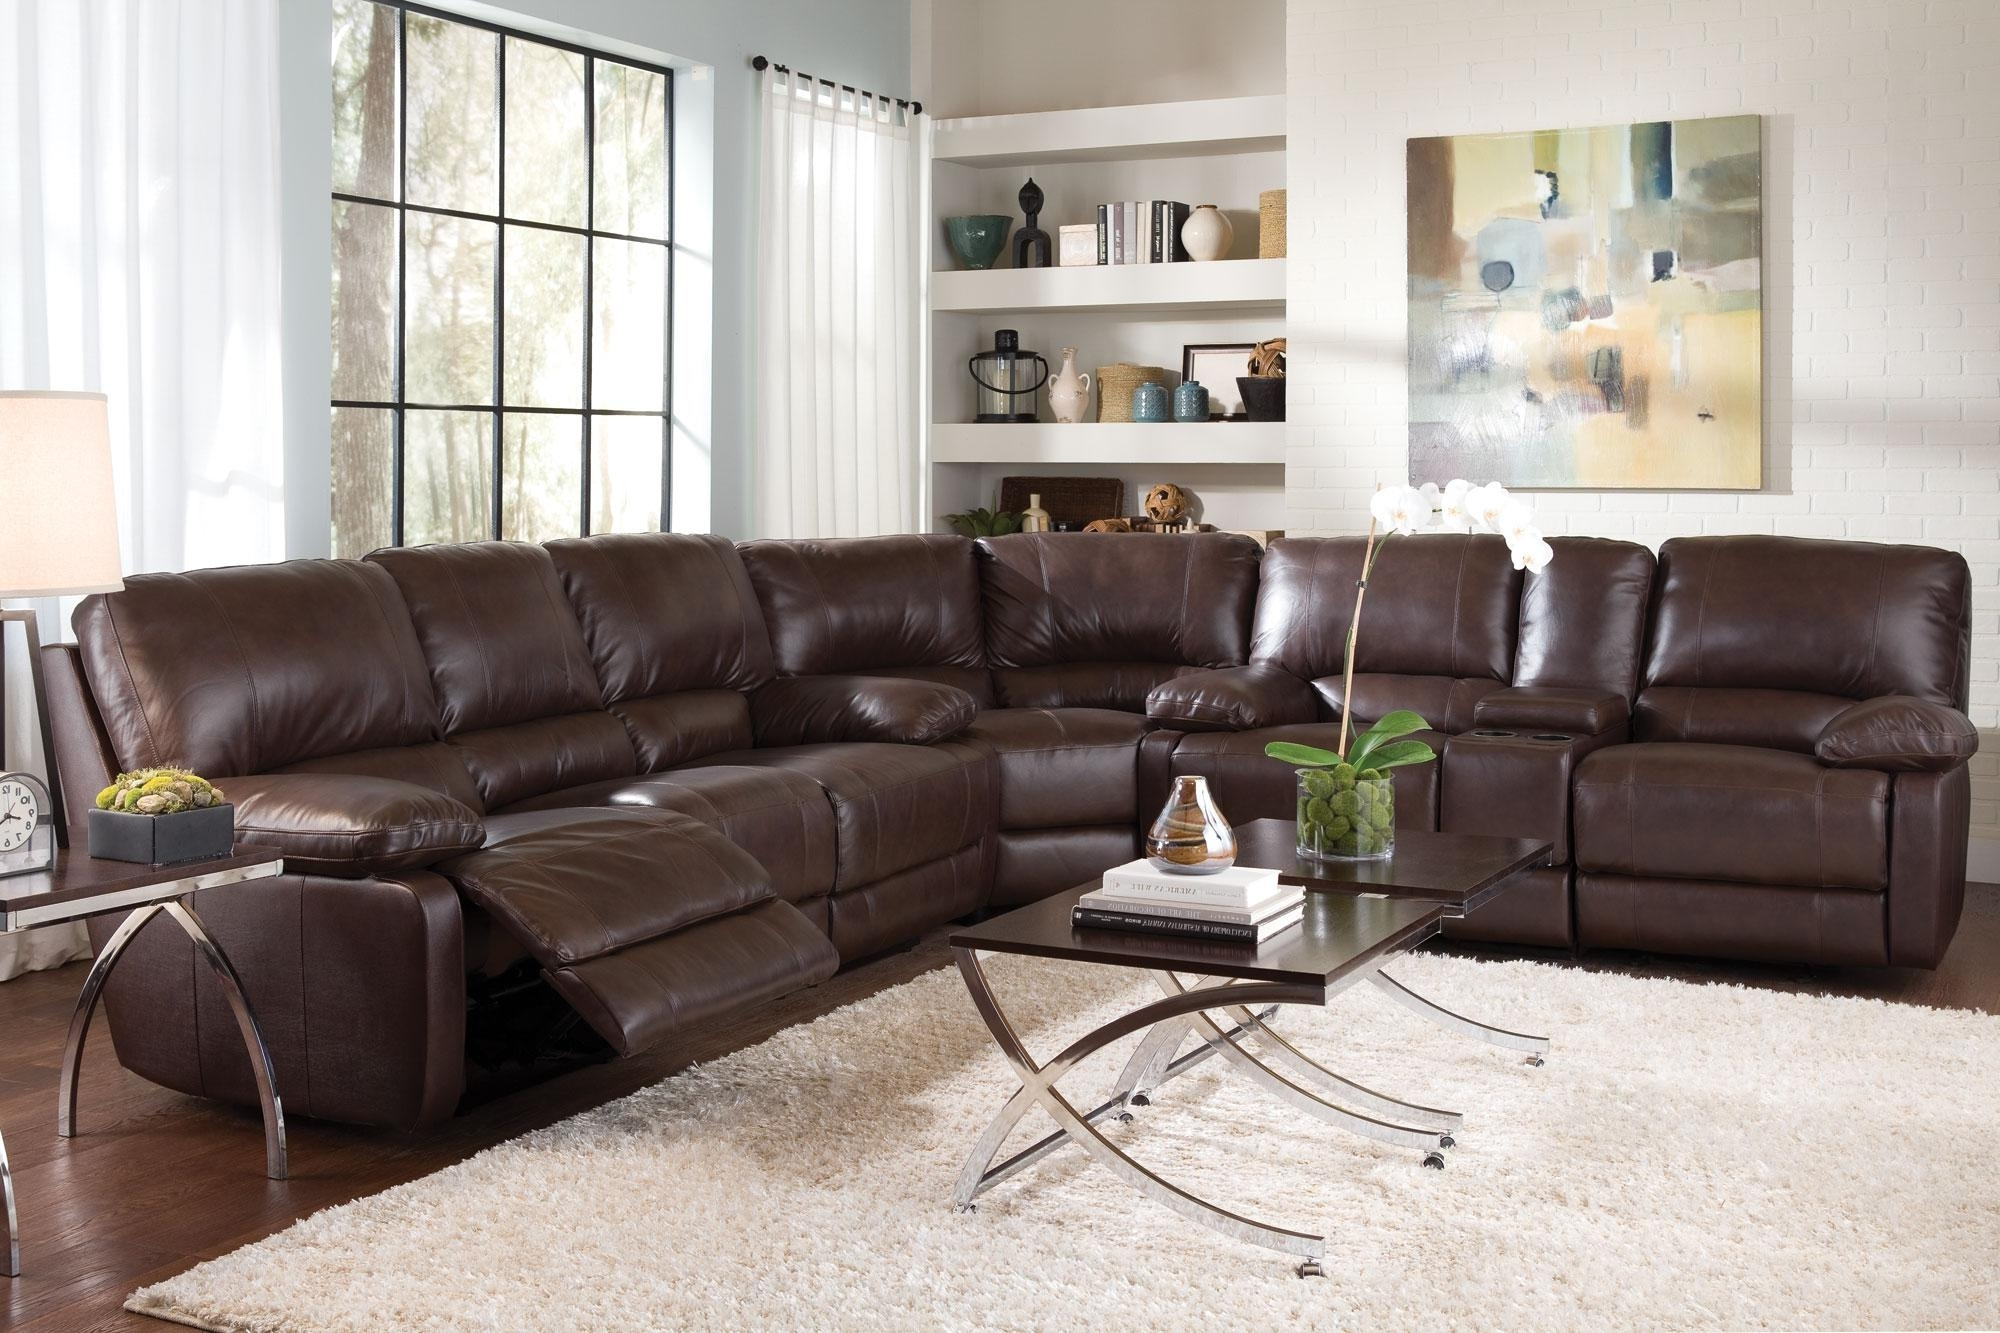 C600021sset – Top Grain Leather Sectional Buy Itthe Piece Or For Newest Leather Motion Sectional Sofas (View 18 of 20)